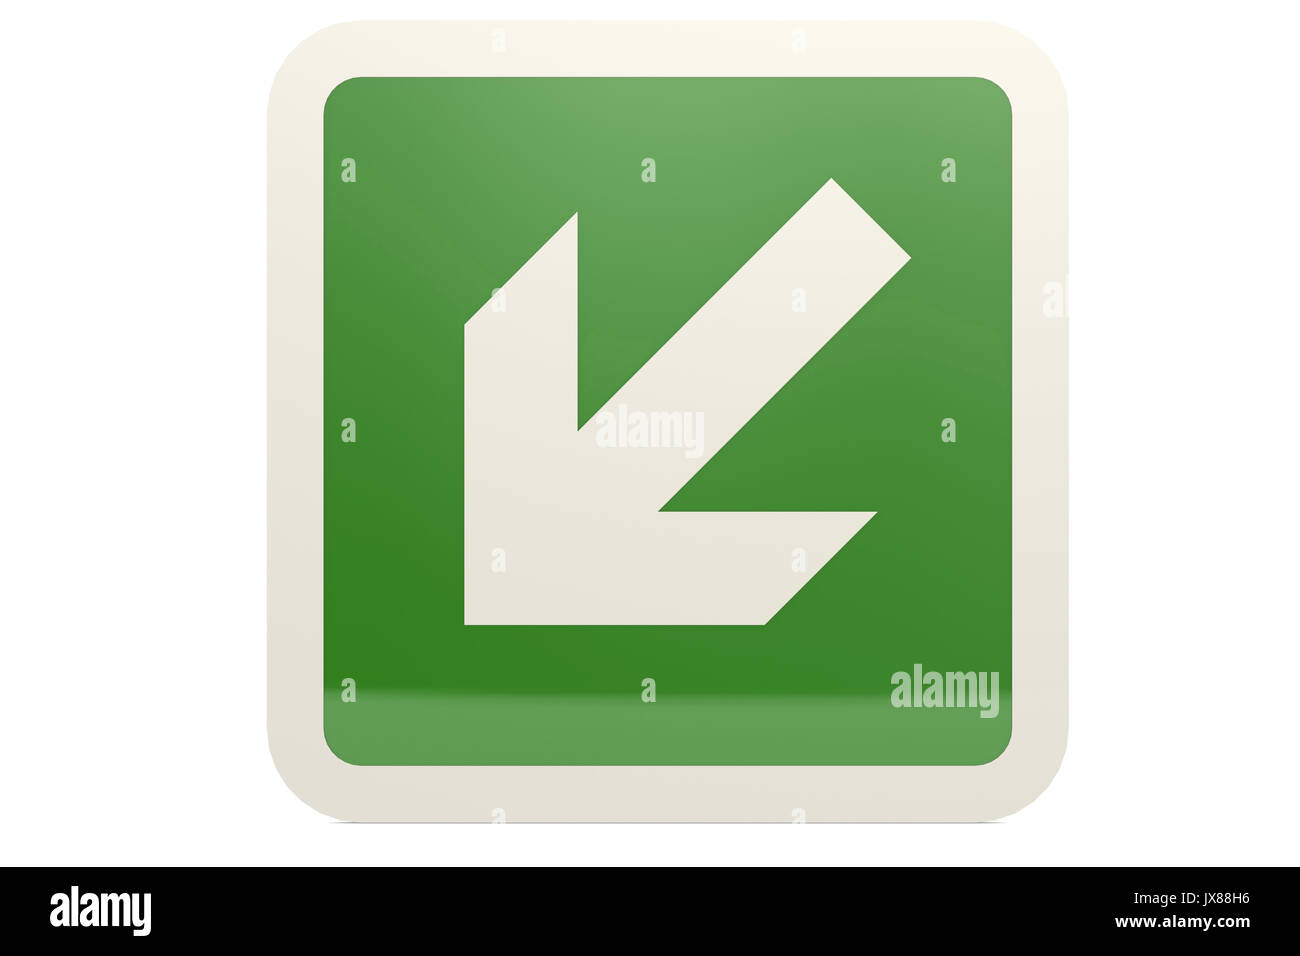 Down arrow icon internet button stock photos down arrow icon green down left arrow sign image 3d rendering stock image biocorpaavc Choice Image